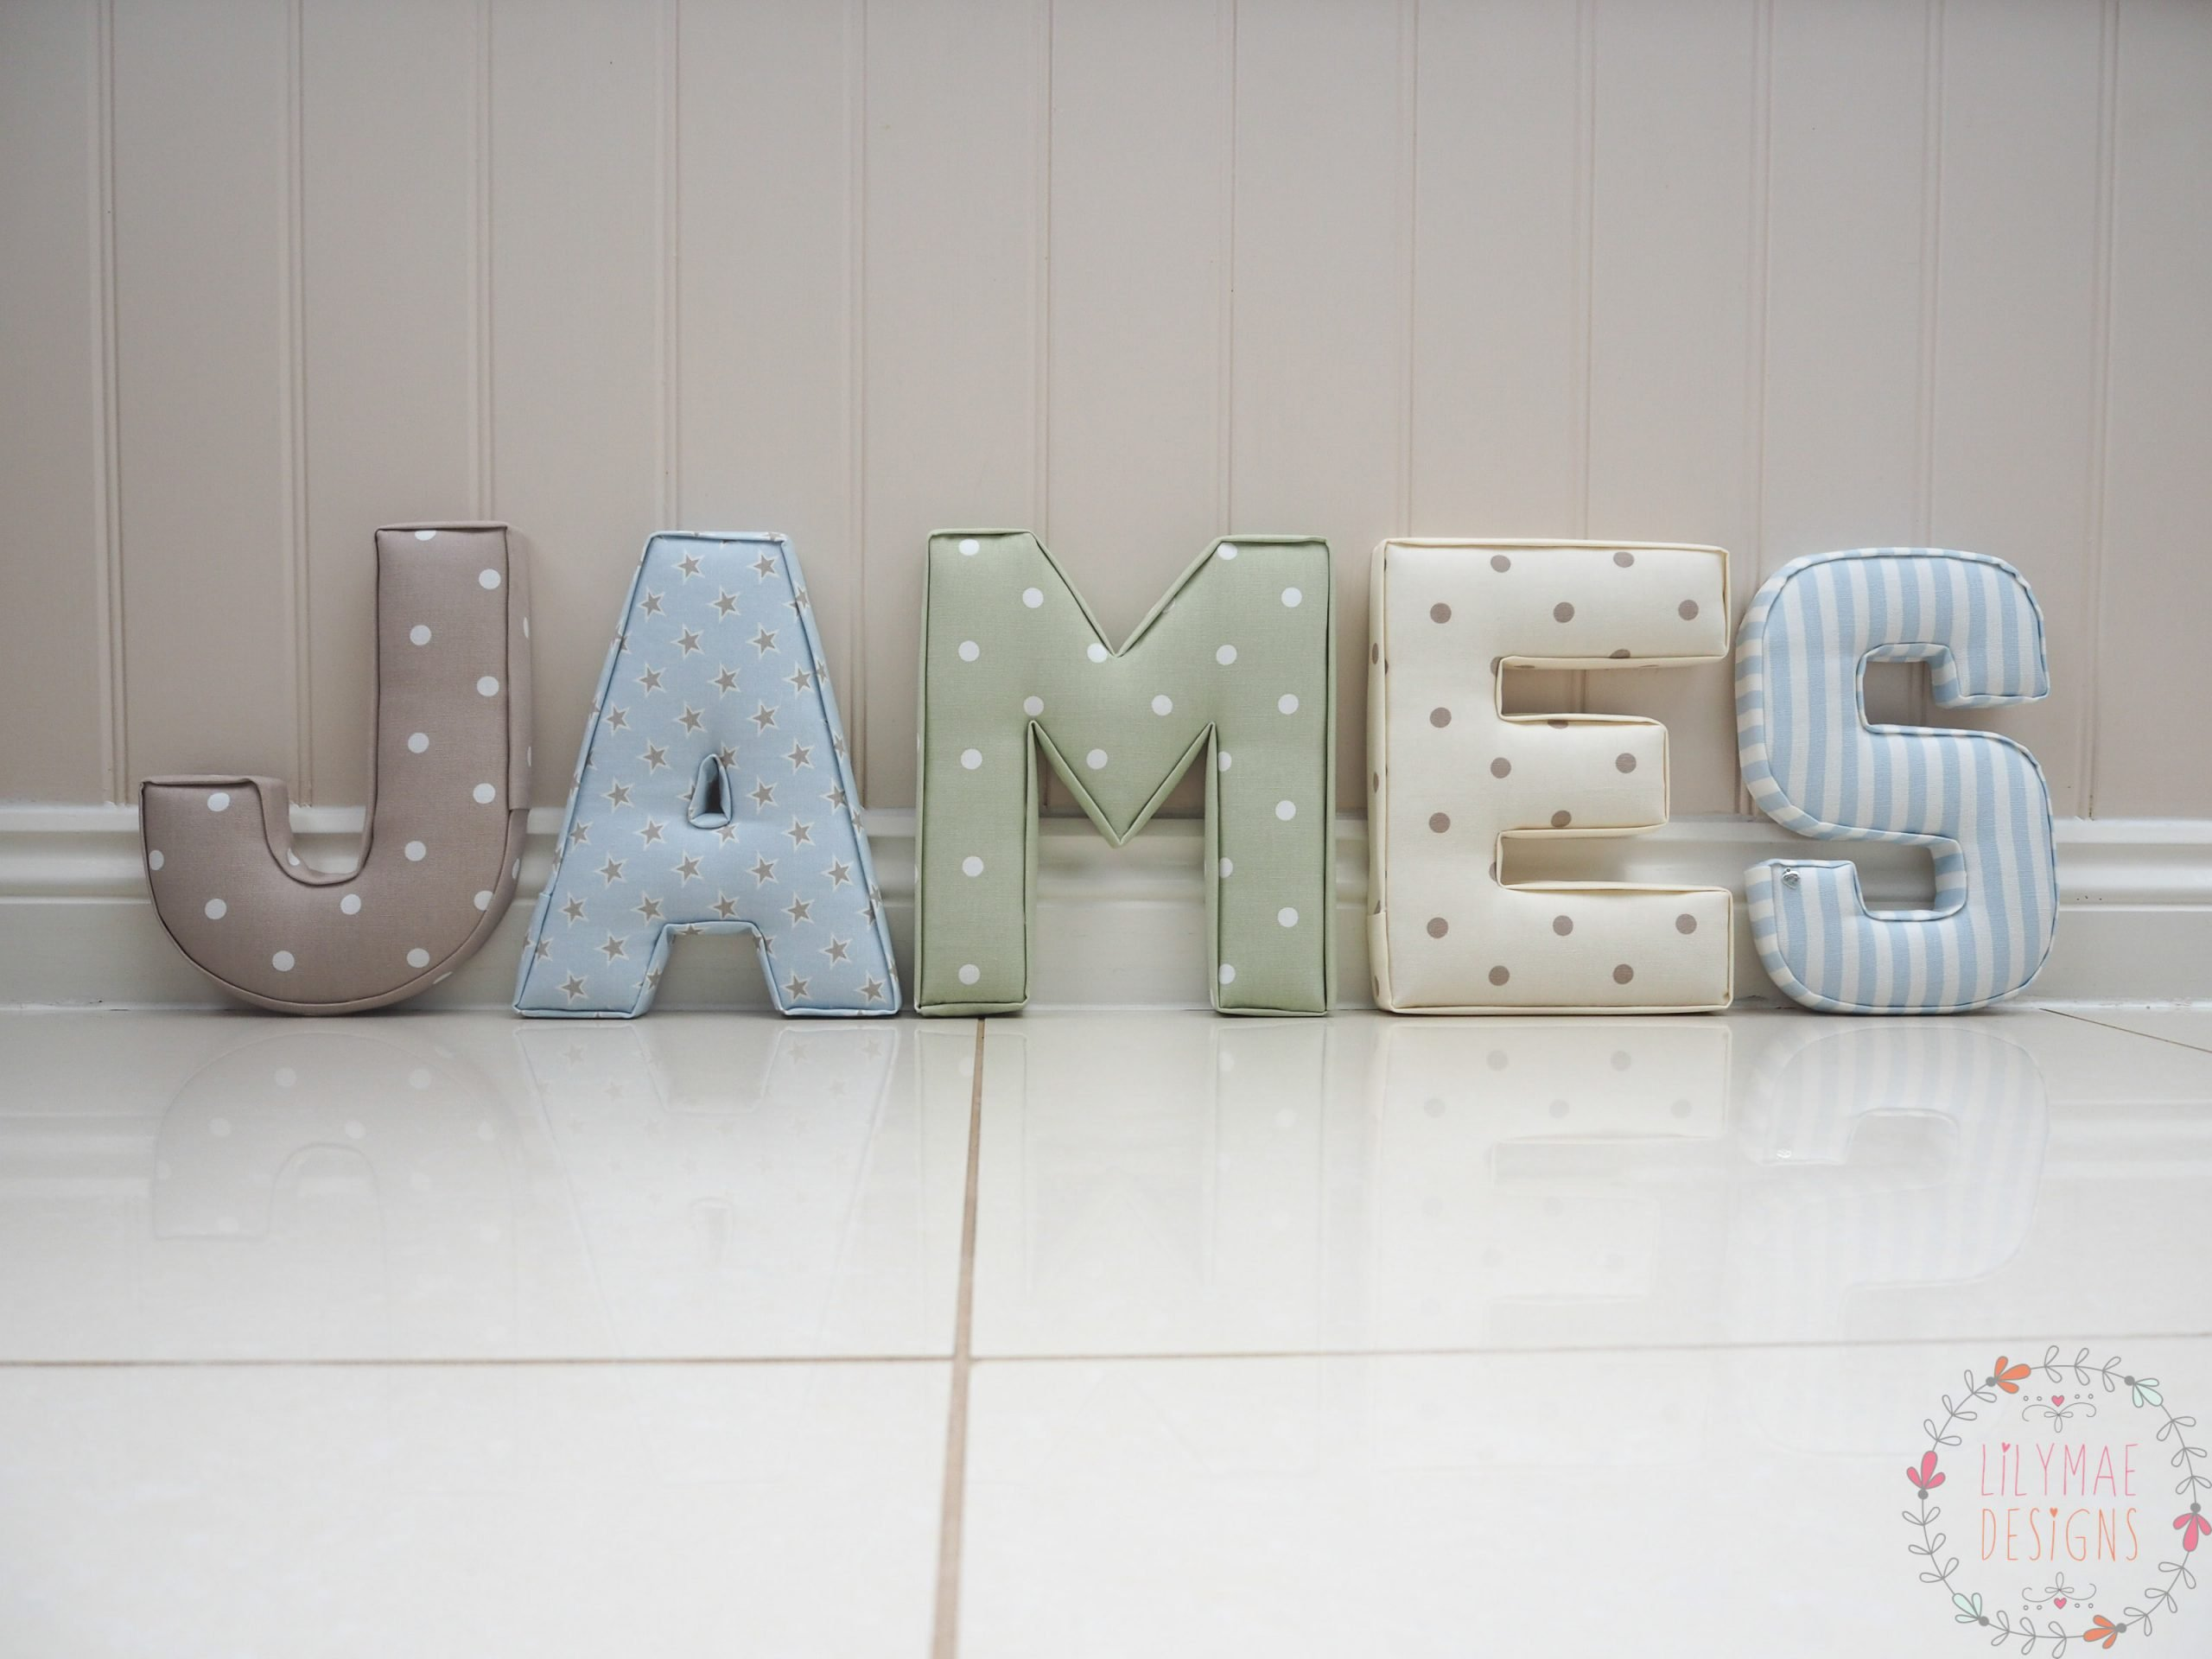 25cm Extra Large Letters James nameset J Dotty Taupe, A Shooting Star Sky, M Dotty Sage, E Dotty Natural, S Party Stripe Sky